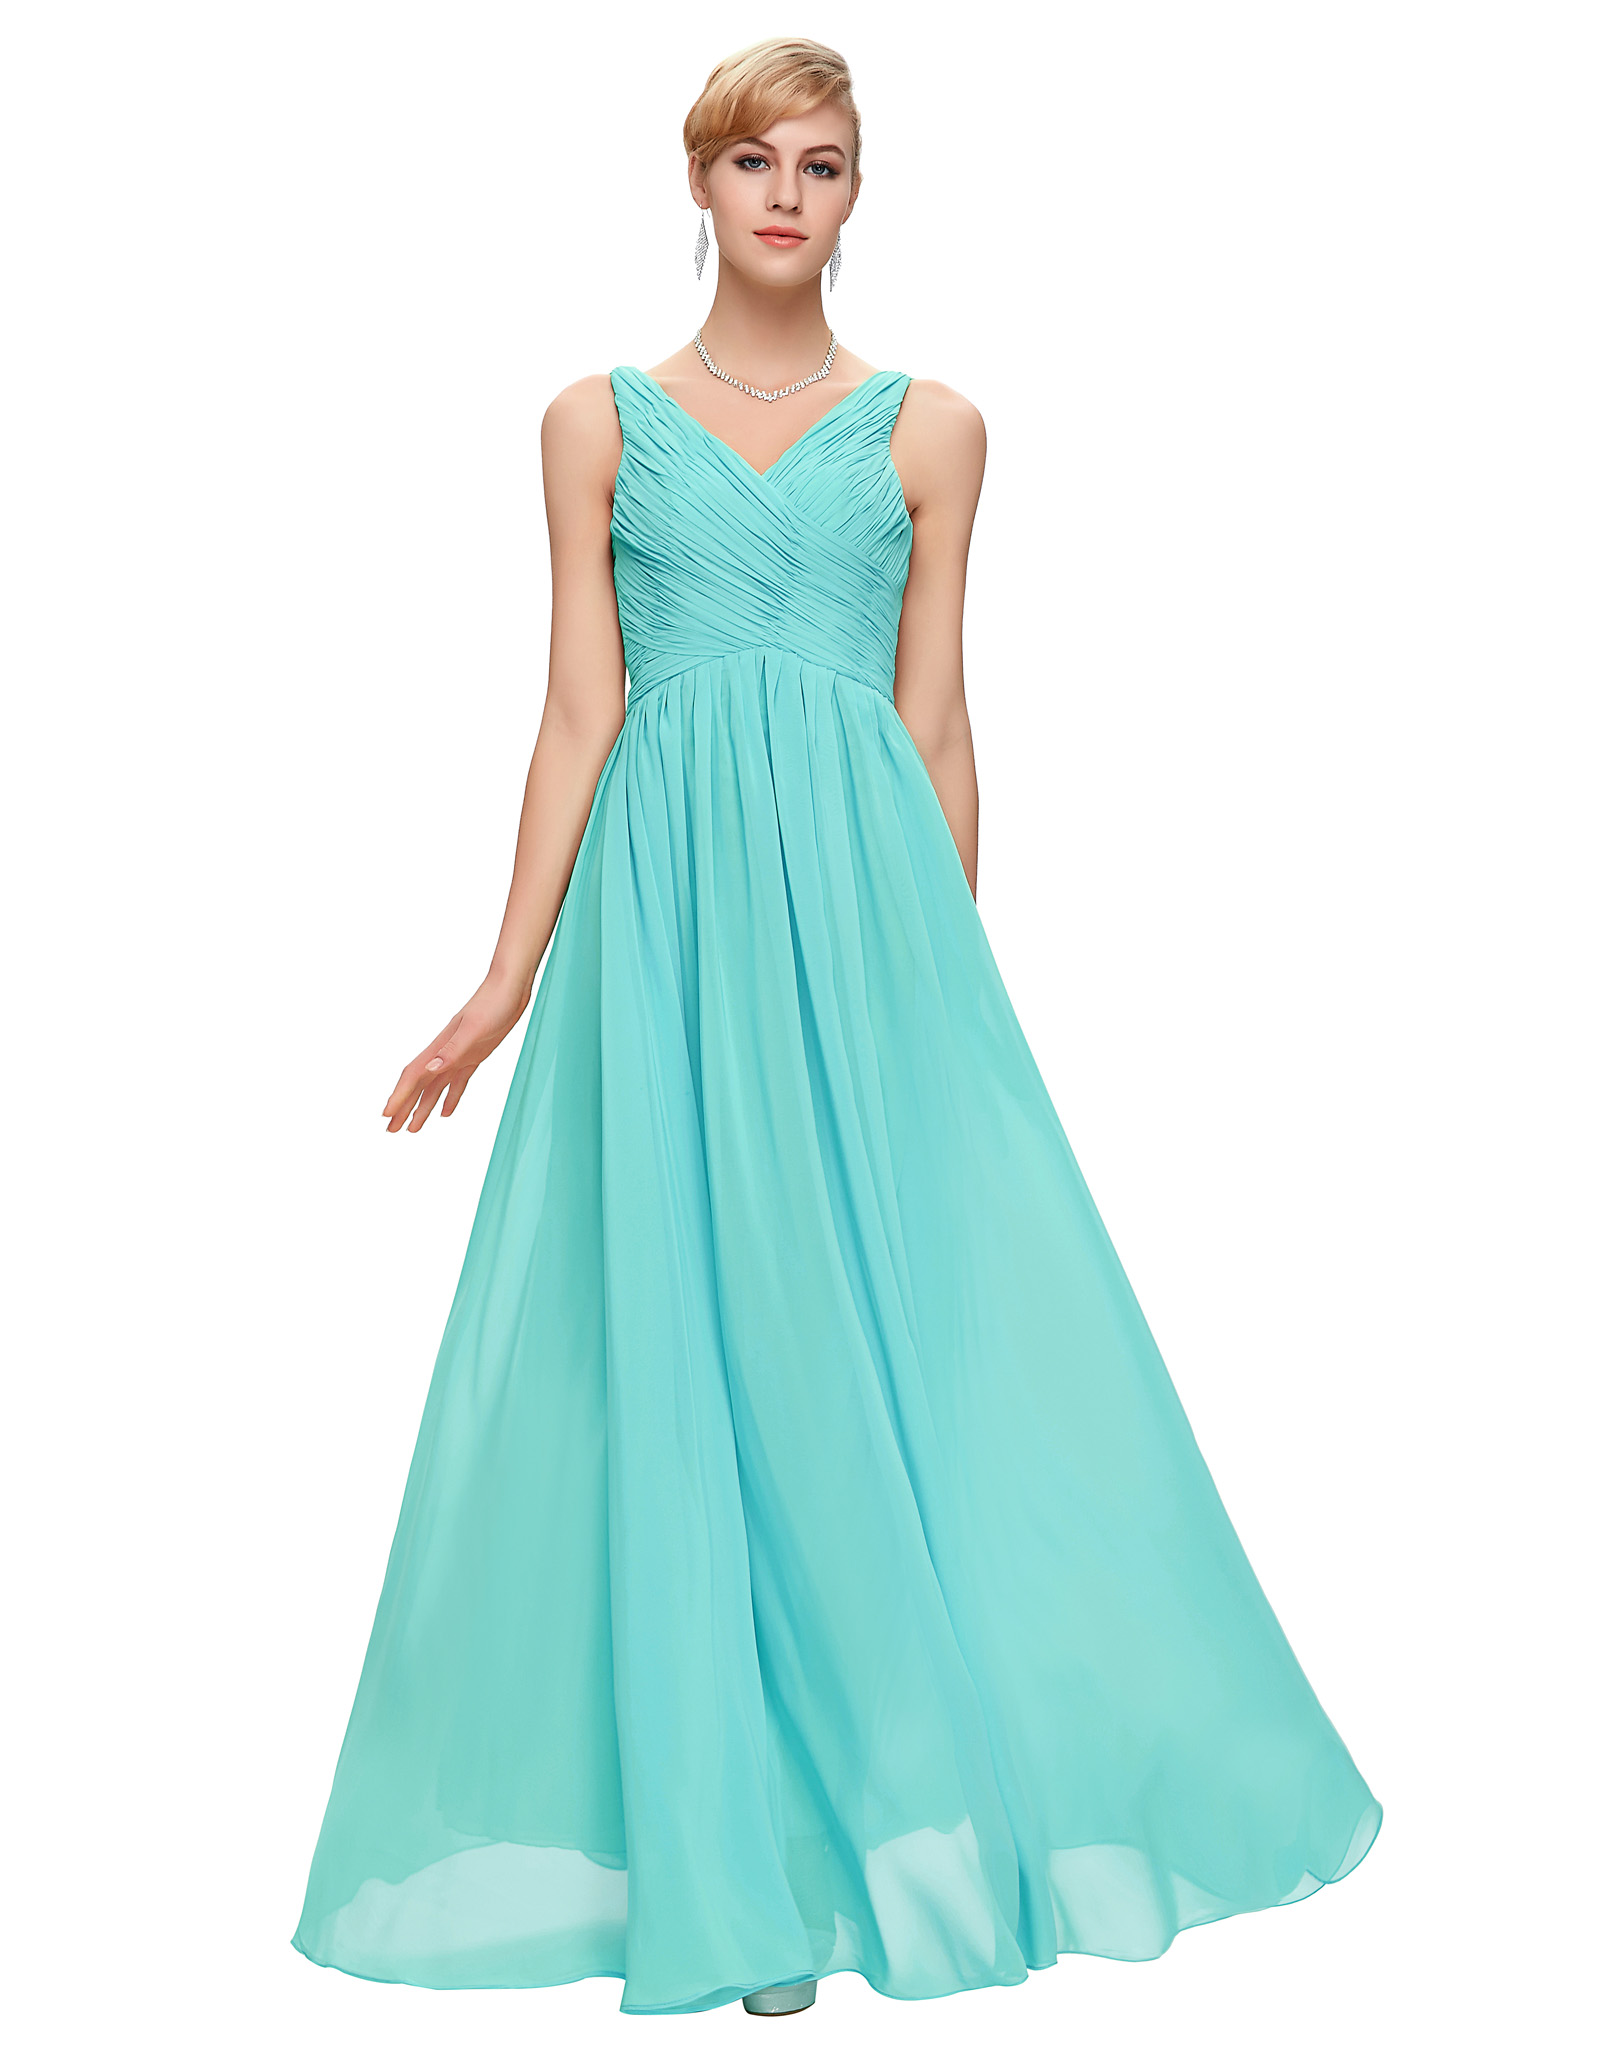 Used Prom Dresses In Green Bay - Homecoming Prom Dresses